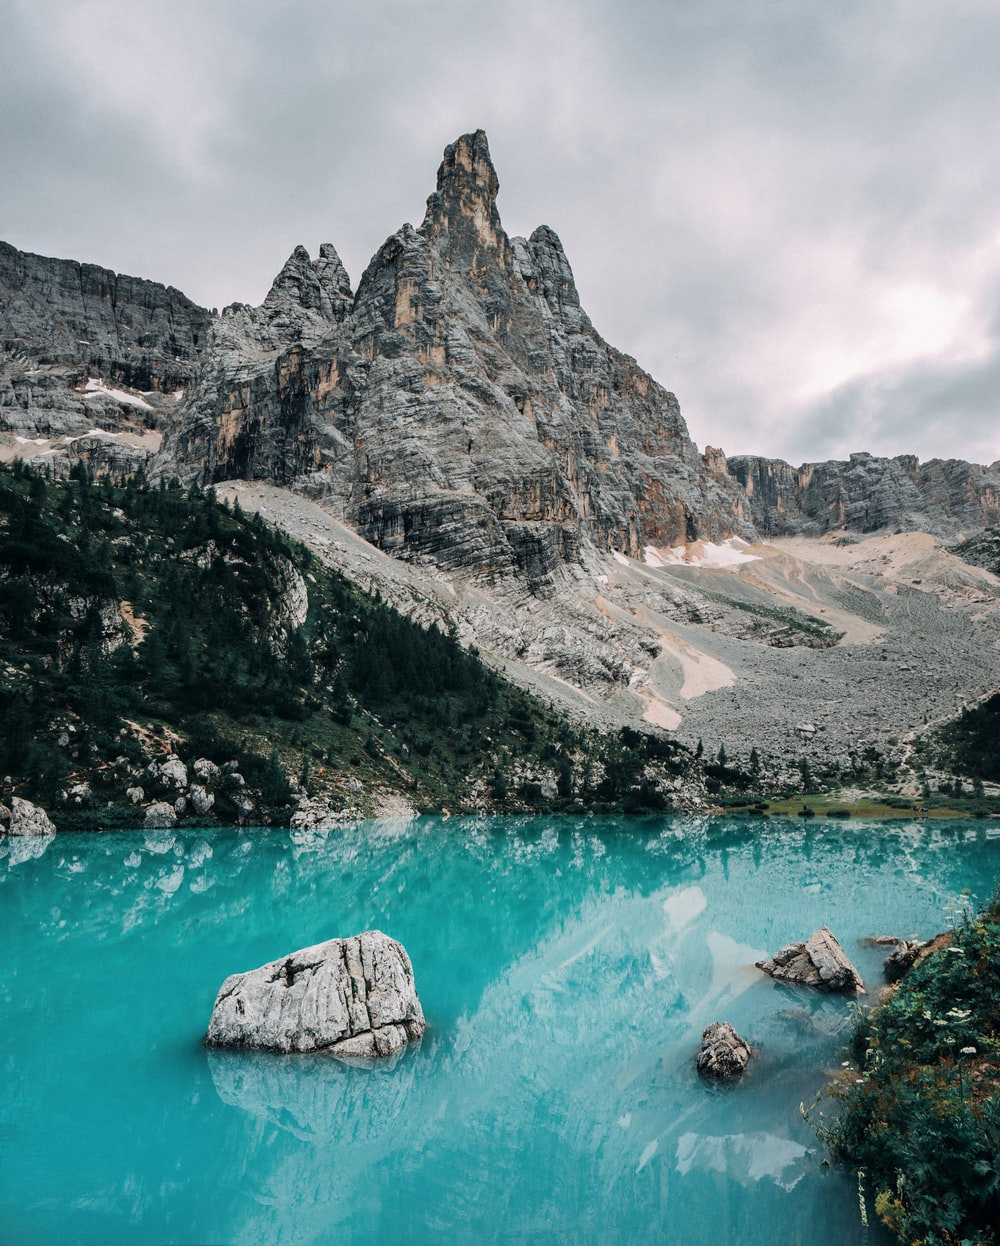 gray rocky mountain beside blue body of water during daytime